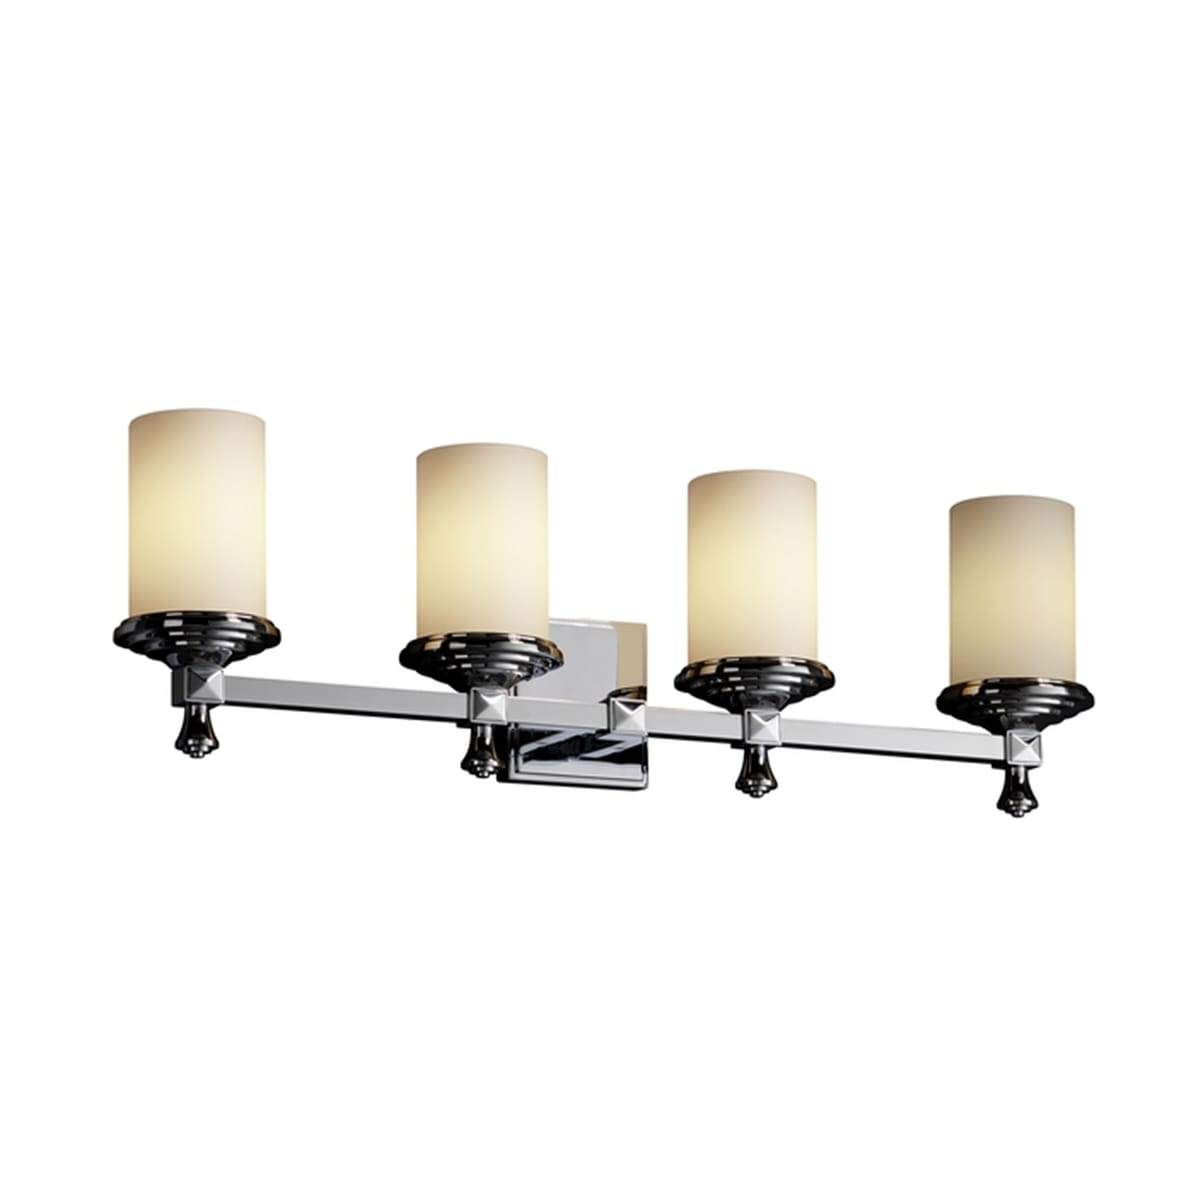 Justice Design Group Fusion 4-Light Chandelier Polished Chrome Finish with Opal Artisan Glass Shade